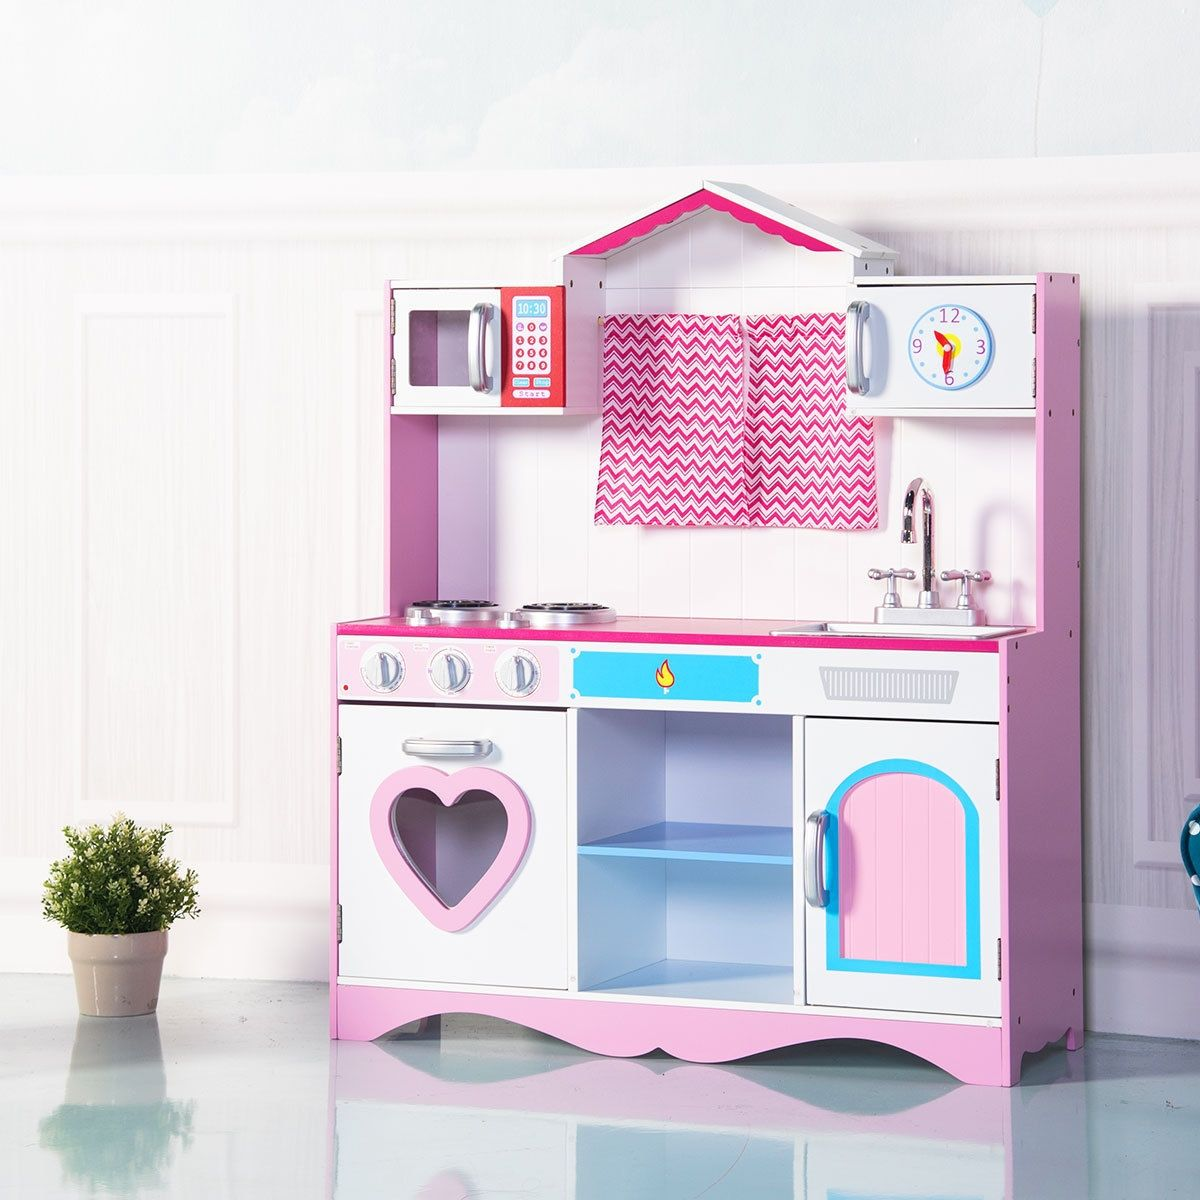 Ad Wood Kitchen Toy Kids Cooking Pretend Play Set Price 234 95